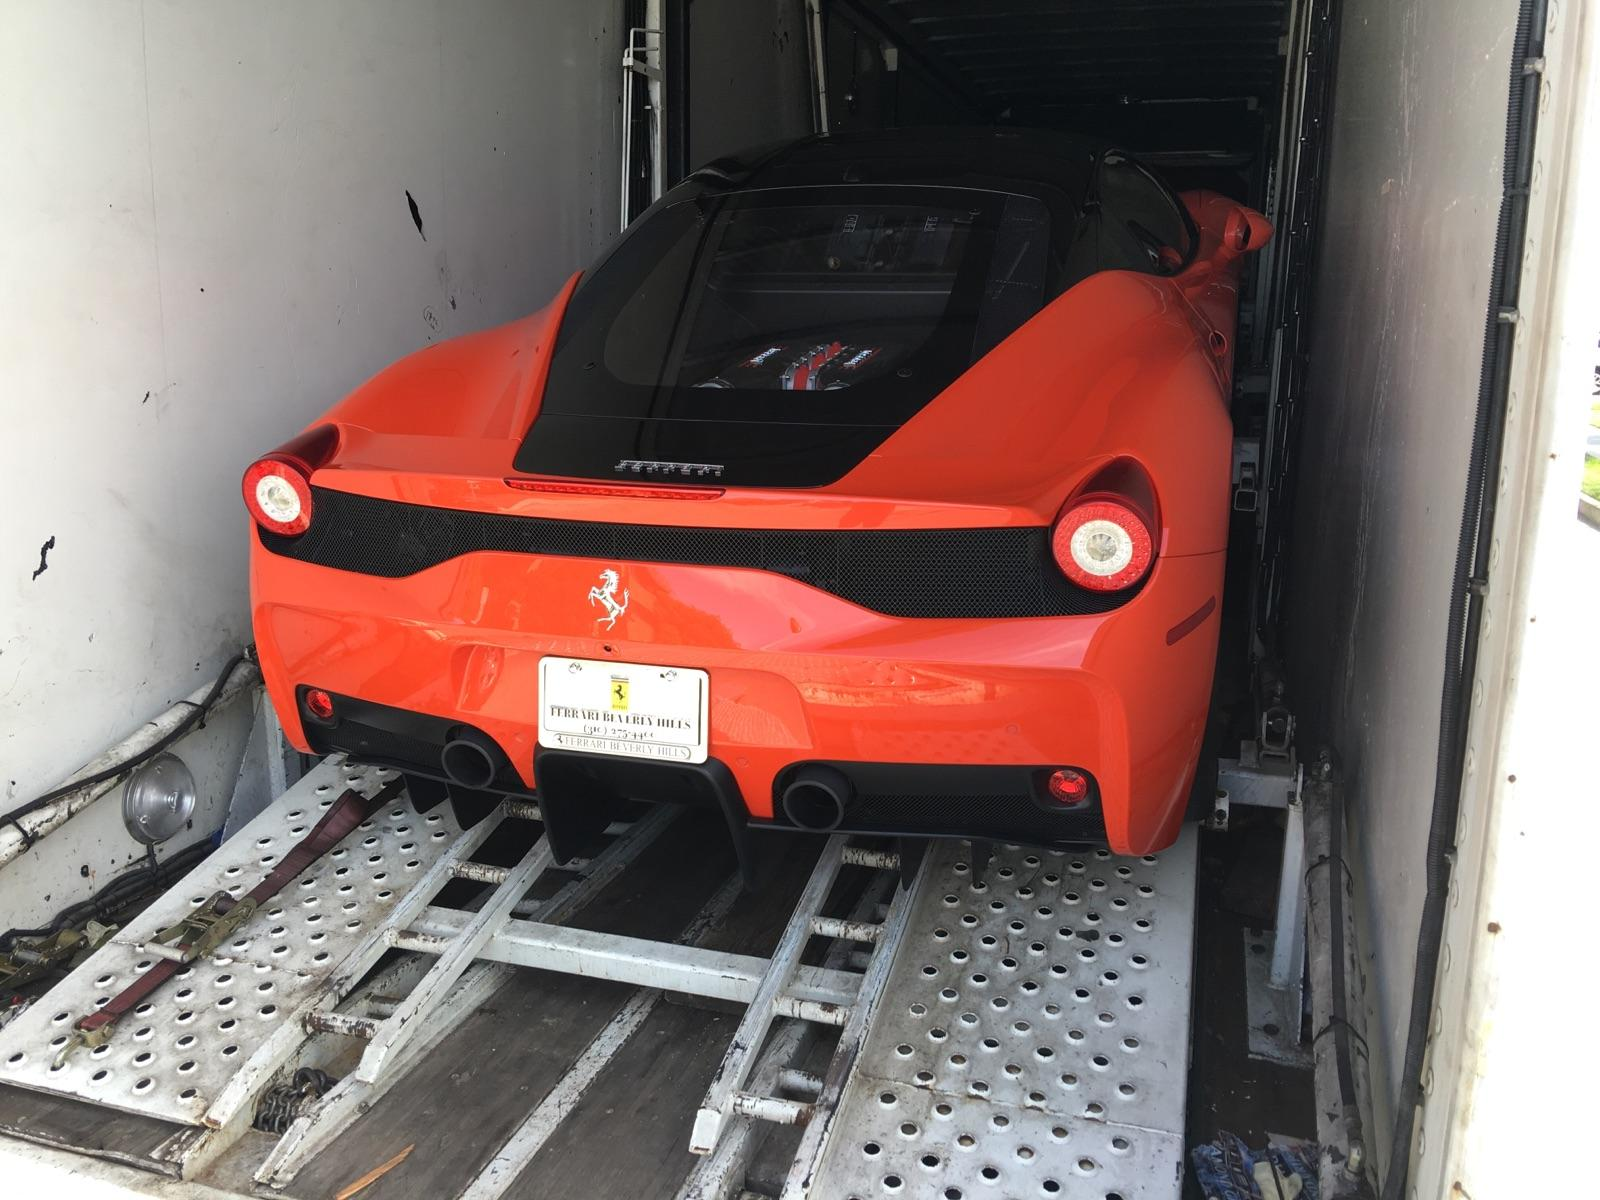 Auto Transport Quotes Gt Auto Transport Inc Reviews And Ratings Of Auto Transport